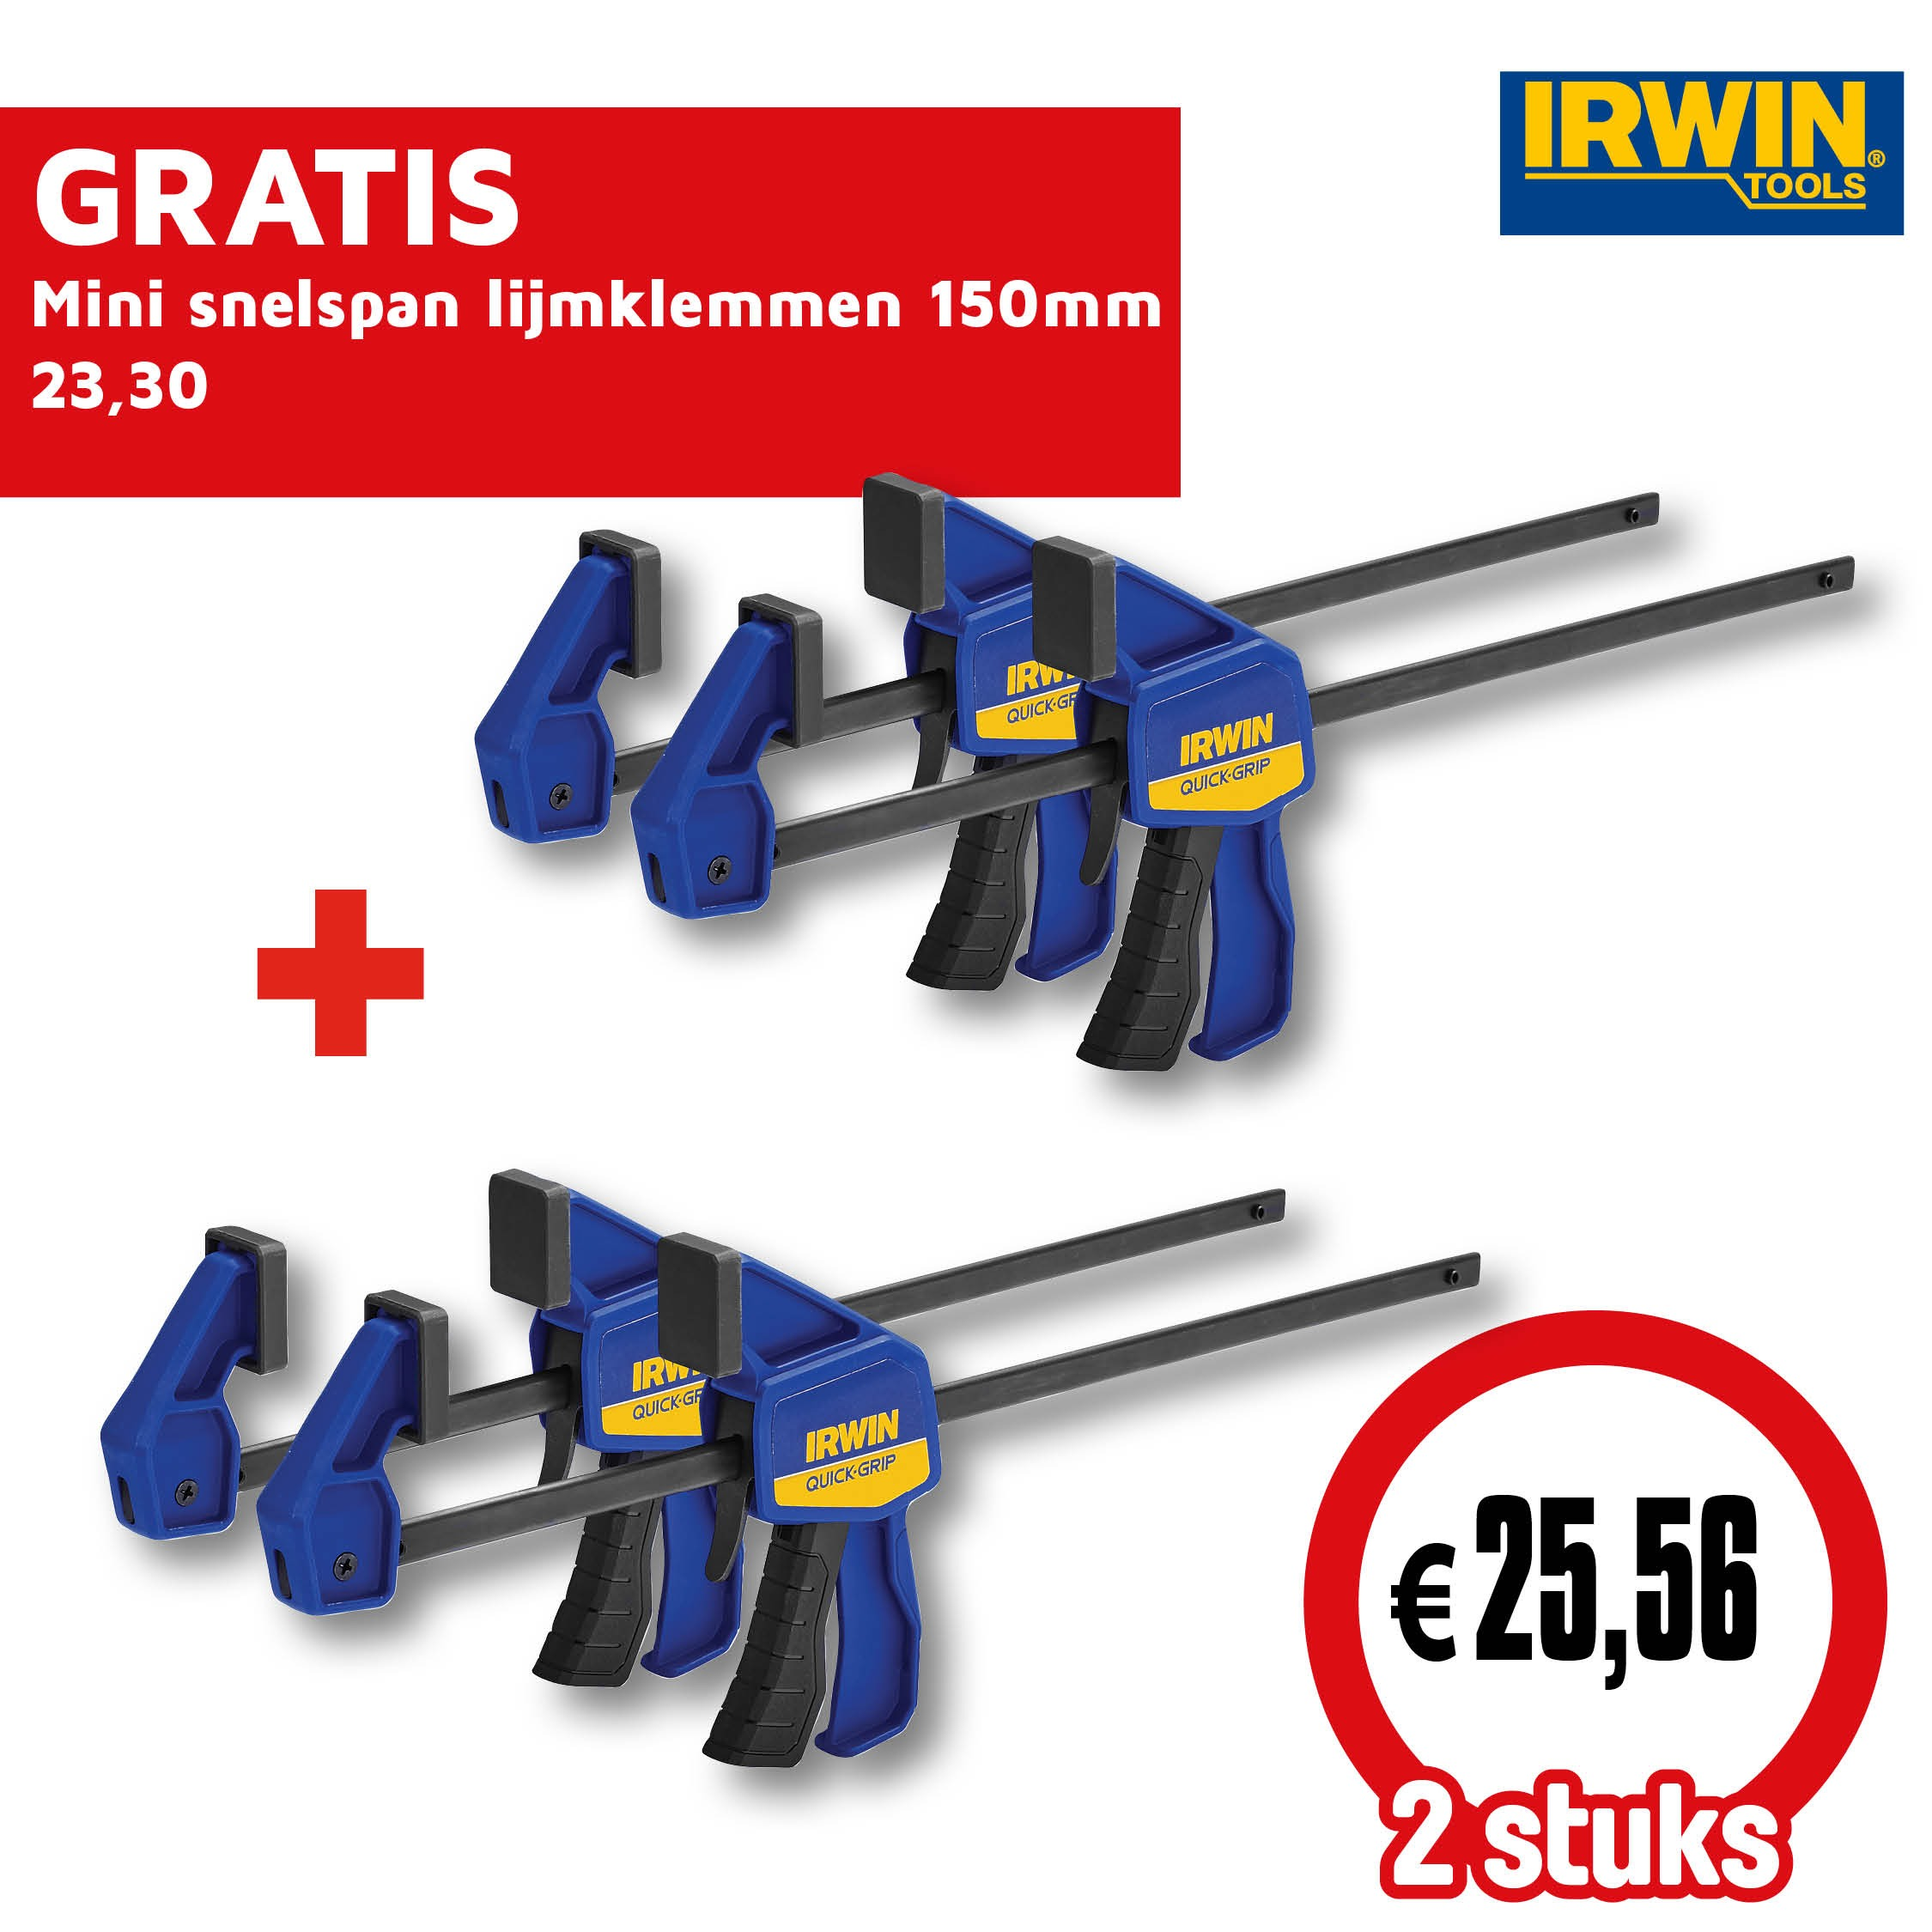 Cat72 P3 - Irwin deal Product nr.41597